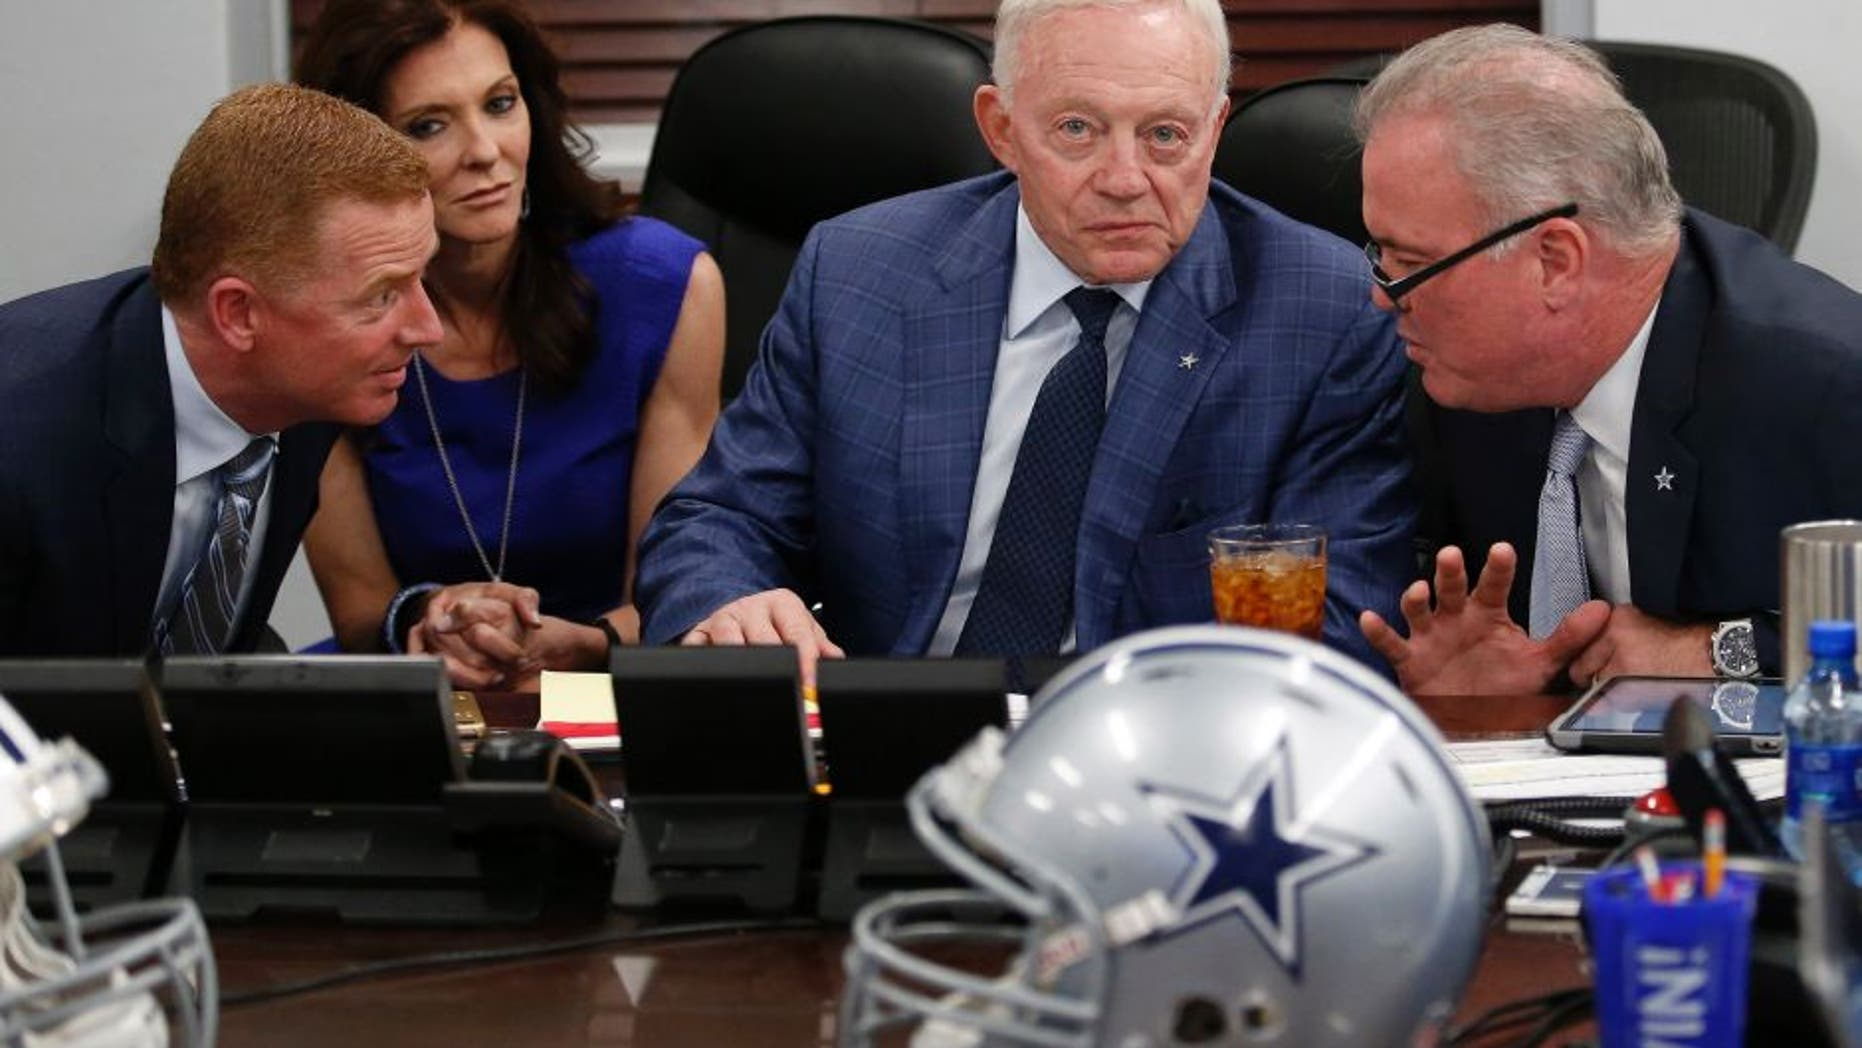 """Dallas Cowboys executives in the """"War Room"""" with head coach Jason Garrett, left, and team principals Charlotte Jones Anderson, owner Jerry Jones and Stephen Jones, right, as the Cowboys take part in the NFL Draft on Thursday, April 28, 2016, at the team Headquarters at Valley Ranch in Irving, Texas. (Paul Moseley/Fort Worth Star-Telegram/TNS via Getty Images)"""